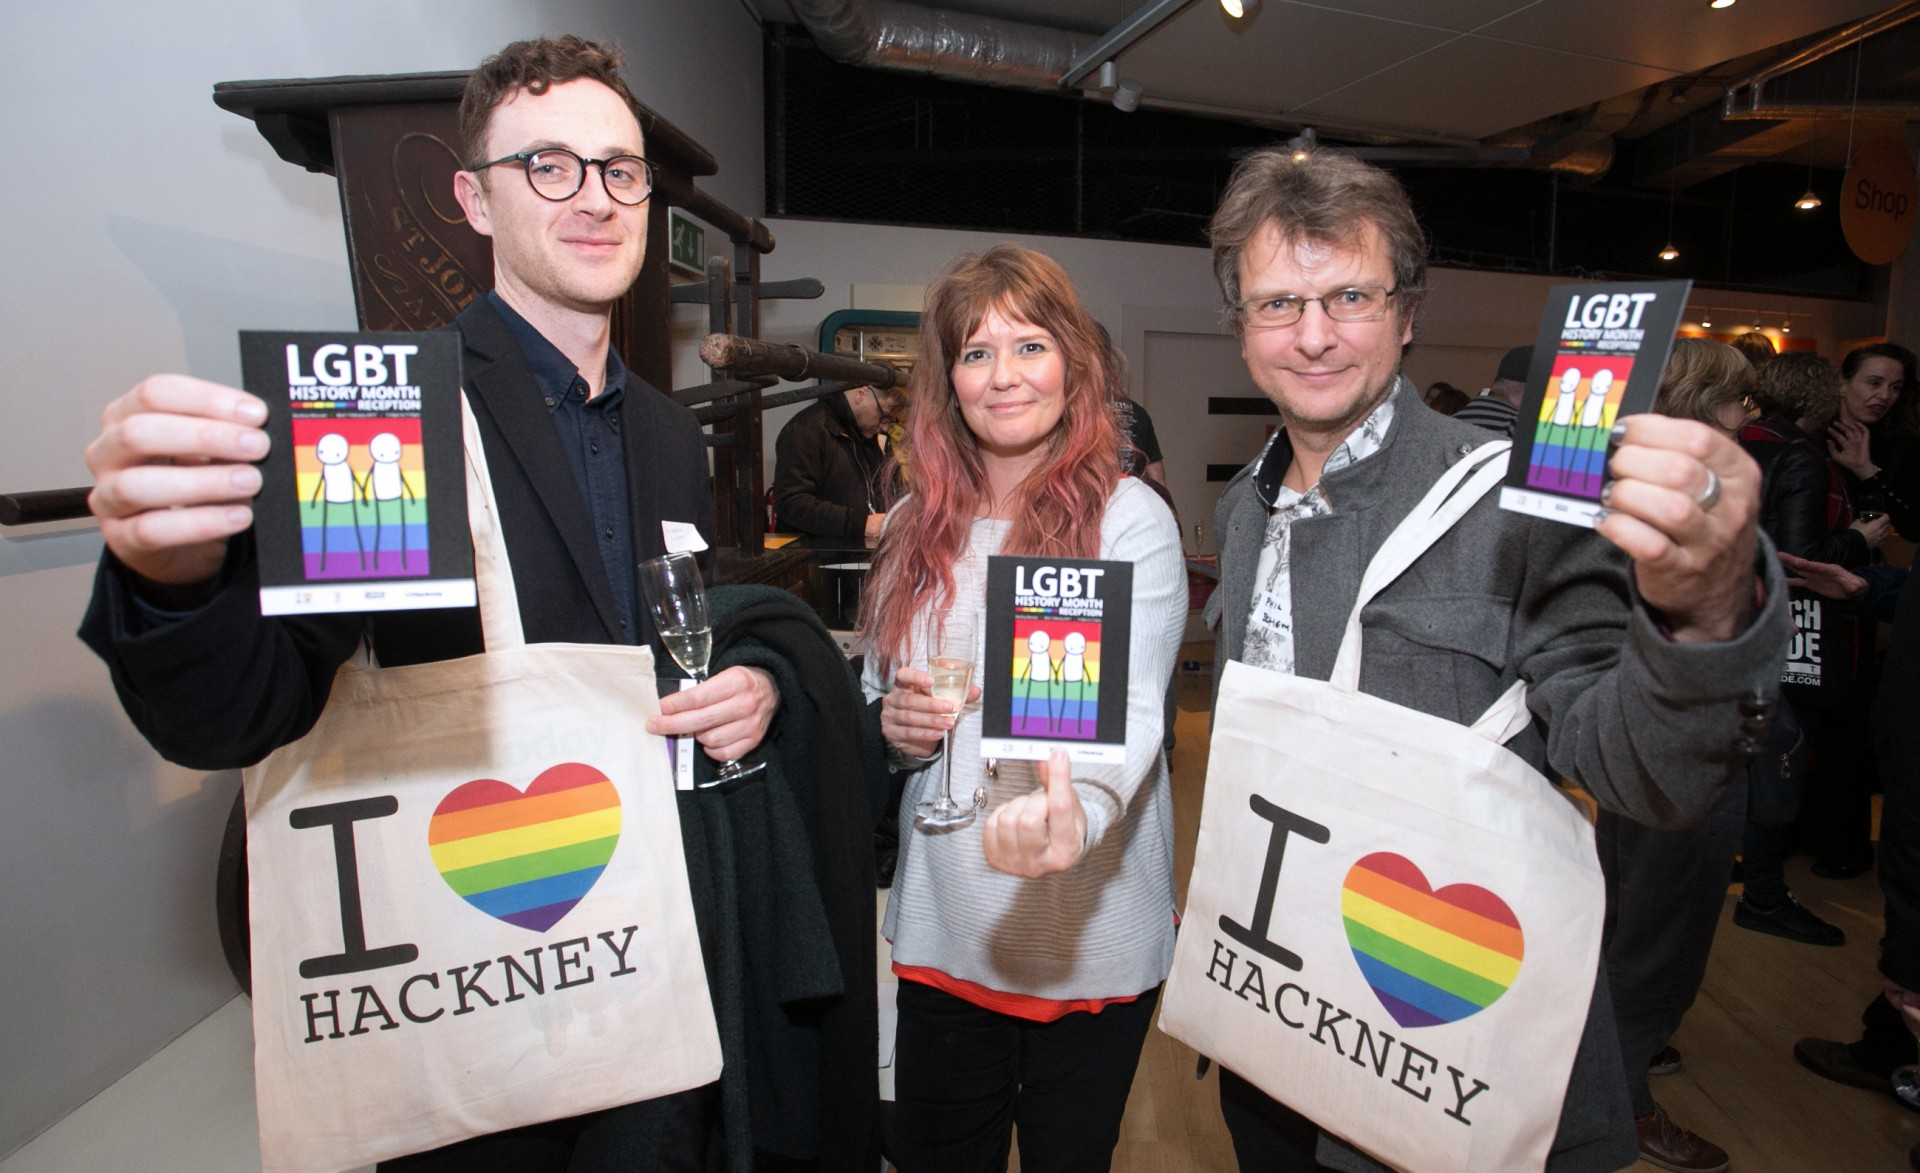 LGBT History Month Reception